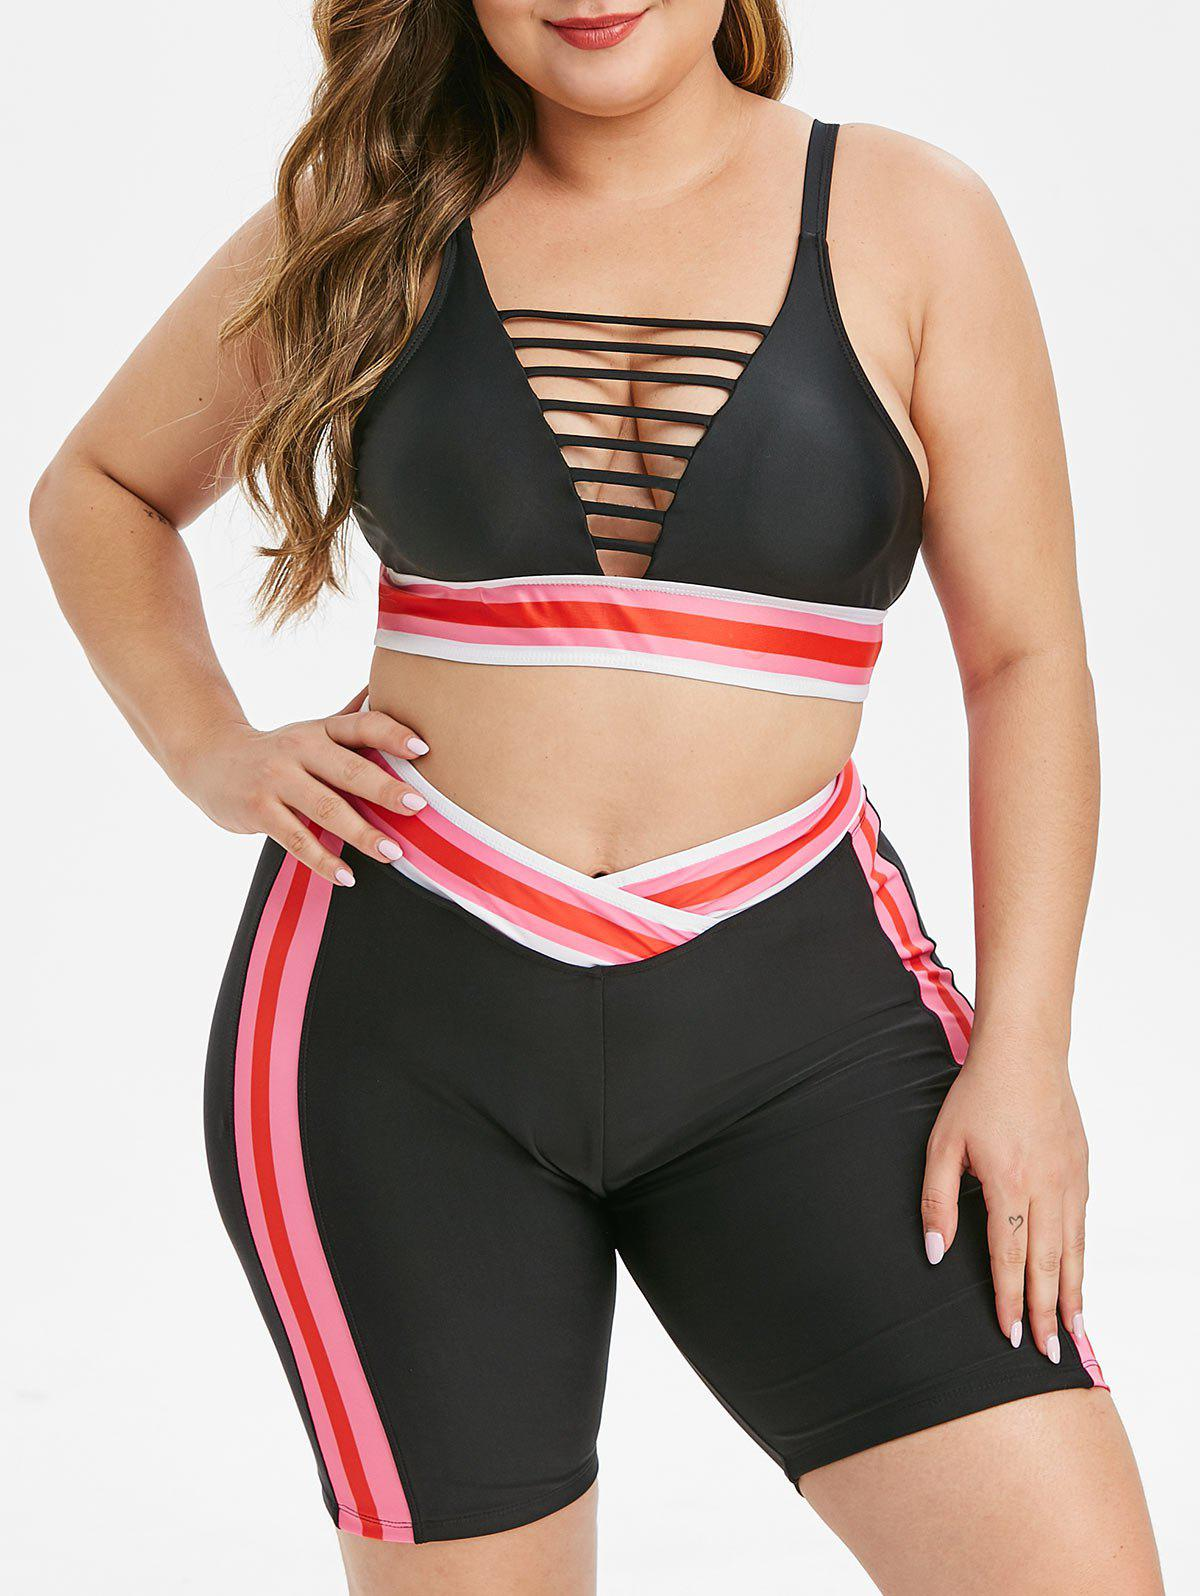 Sale Overlap Waist Stripes Laddering Cut Out Plus Size Bikini Swimsuit